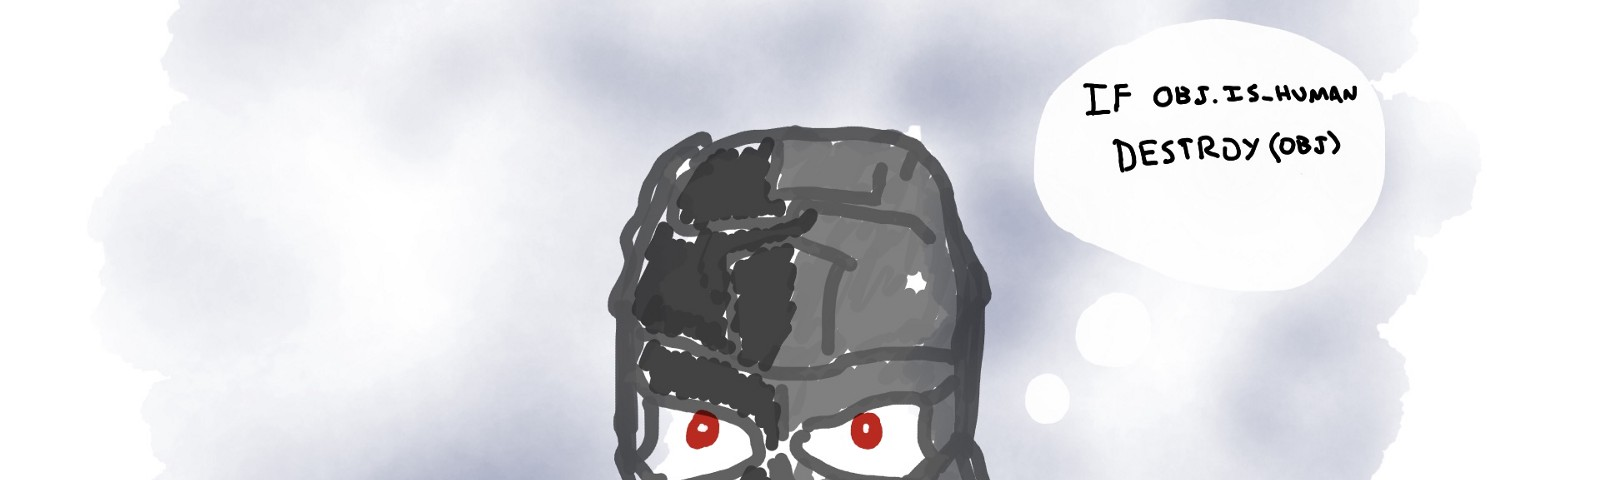 """An illustration of a Terminator robot with a thought bubble that says """"IF OBJ.IS_HUMAN DESTROY OBJ"""